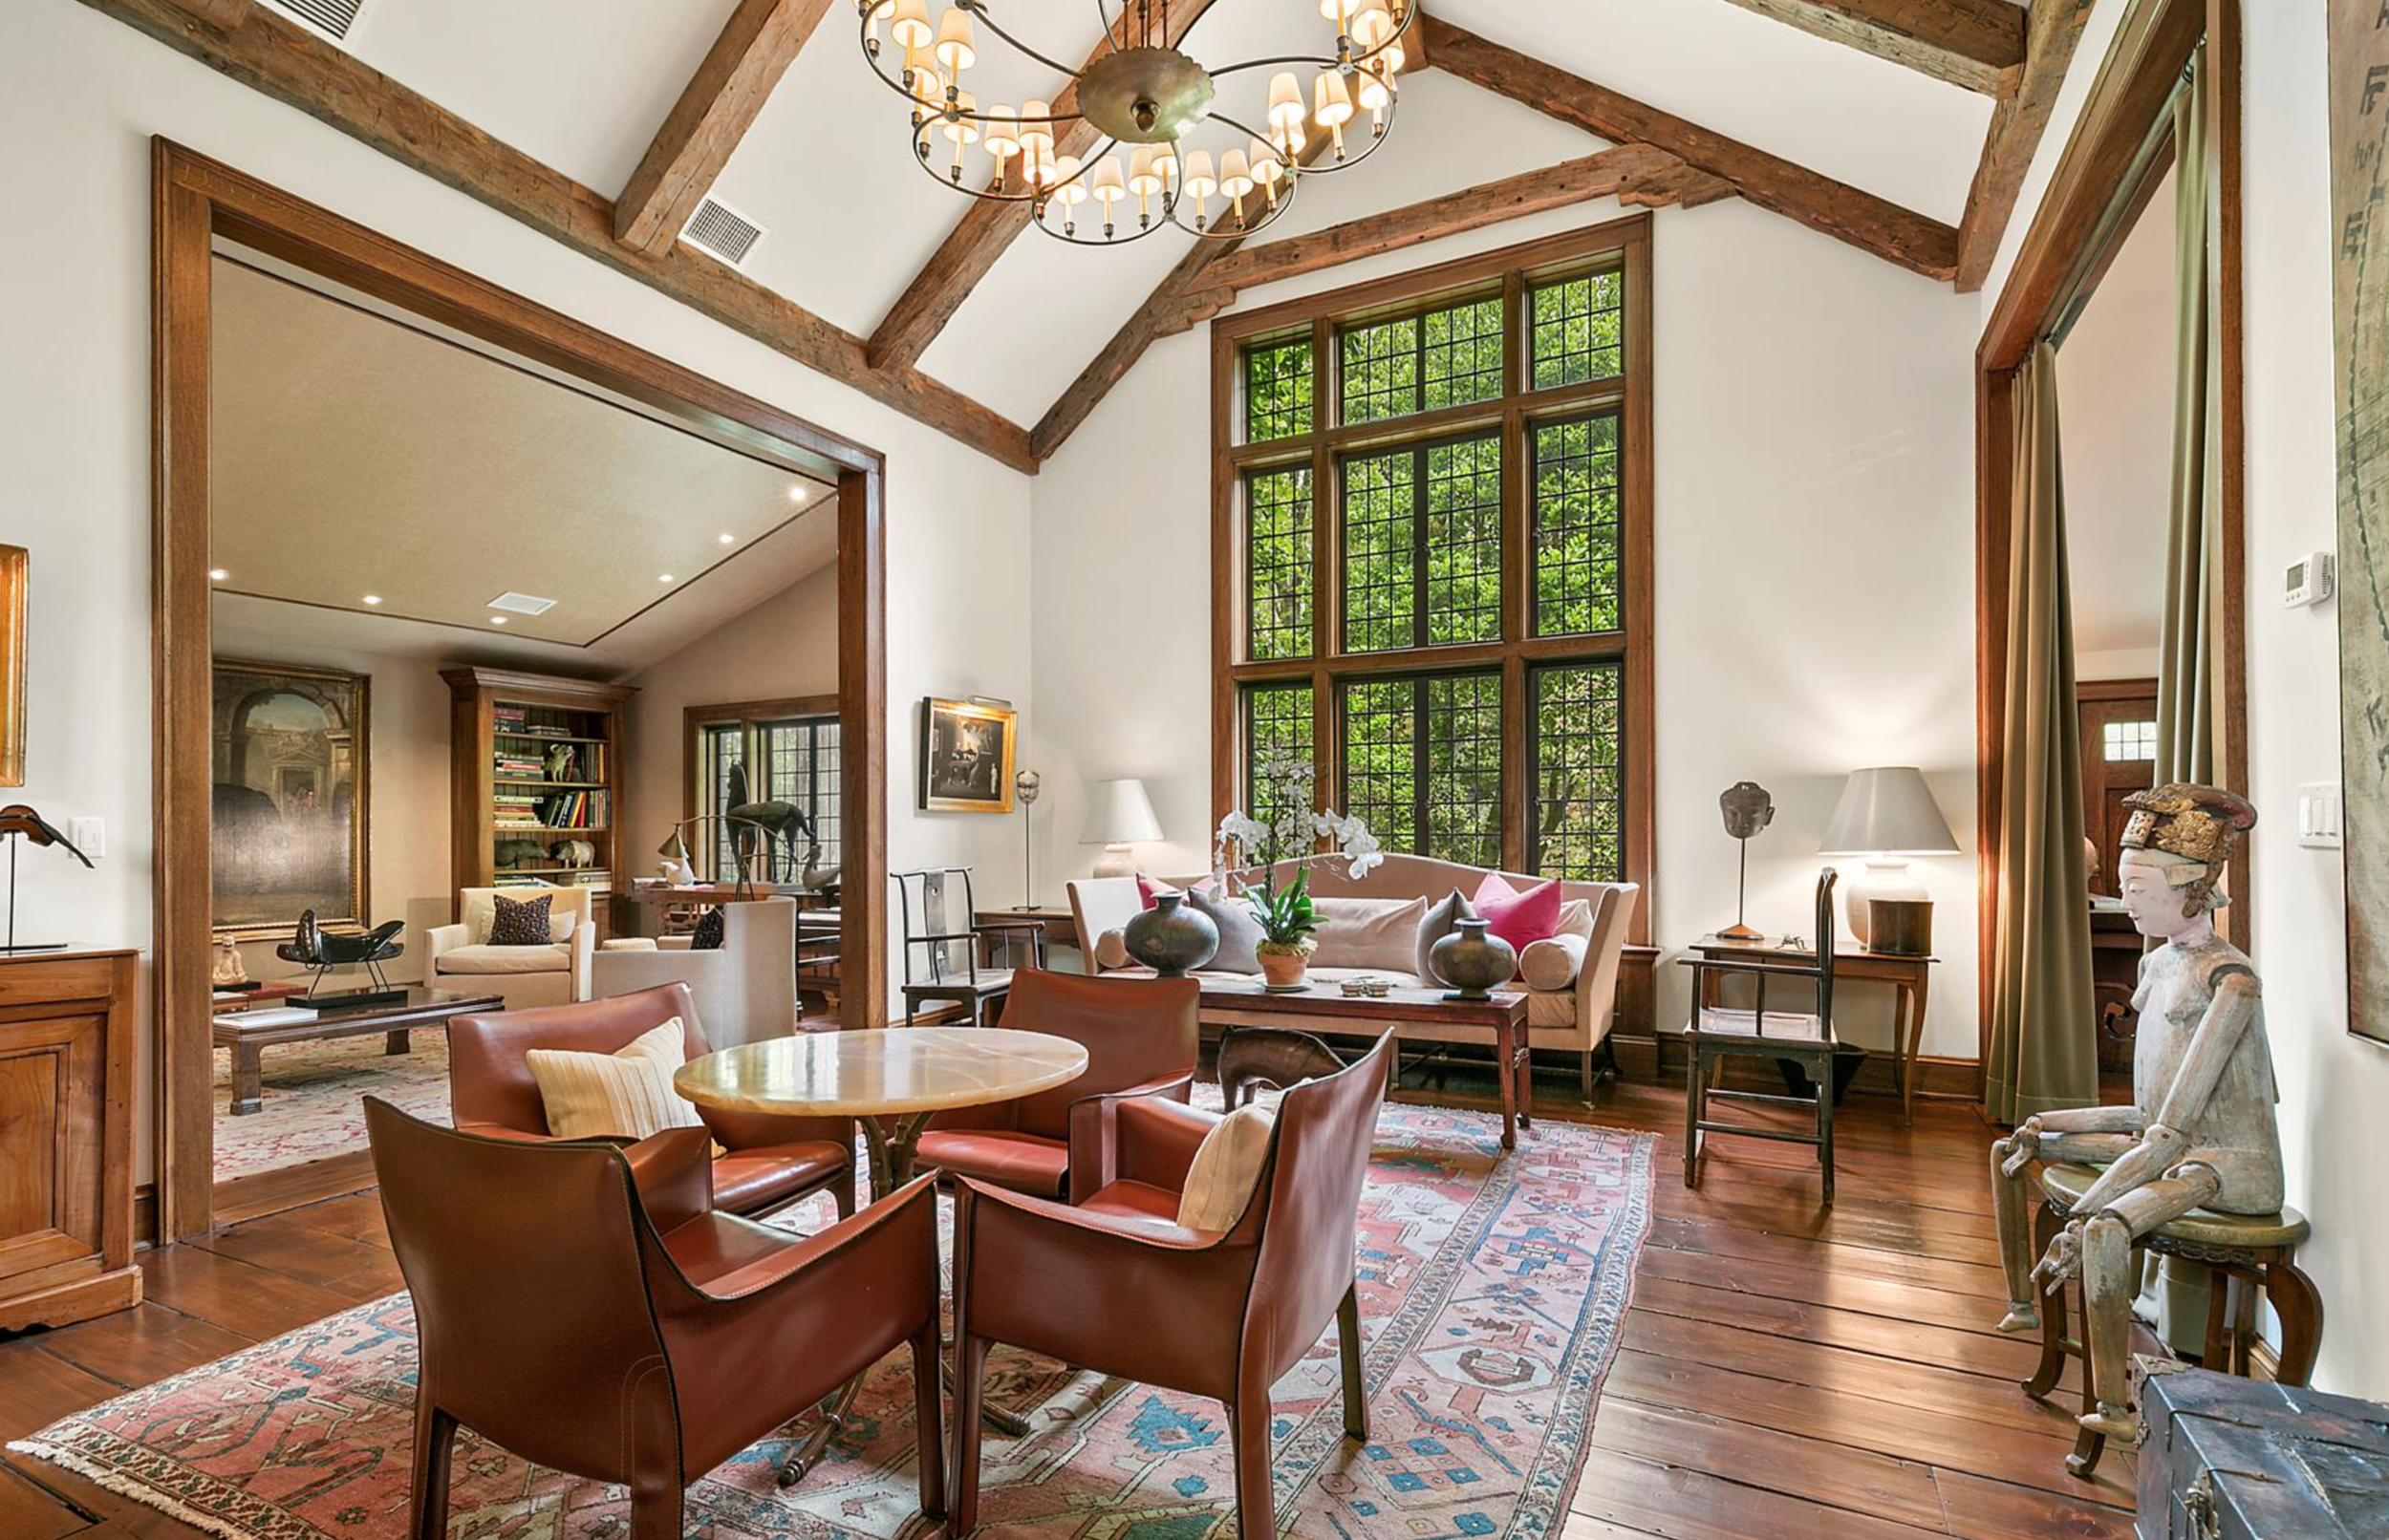 Featured Listing: Restored Westchester Estate on 20.5 Acres Lists for $12 Million